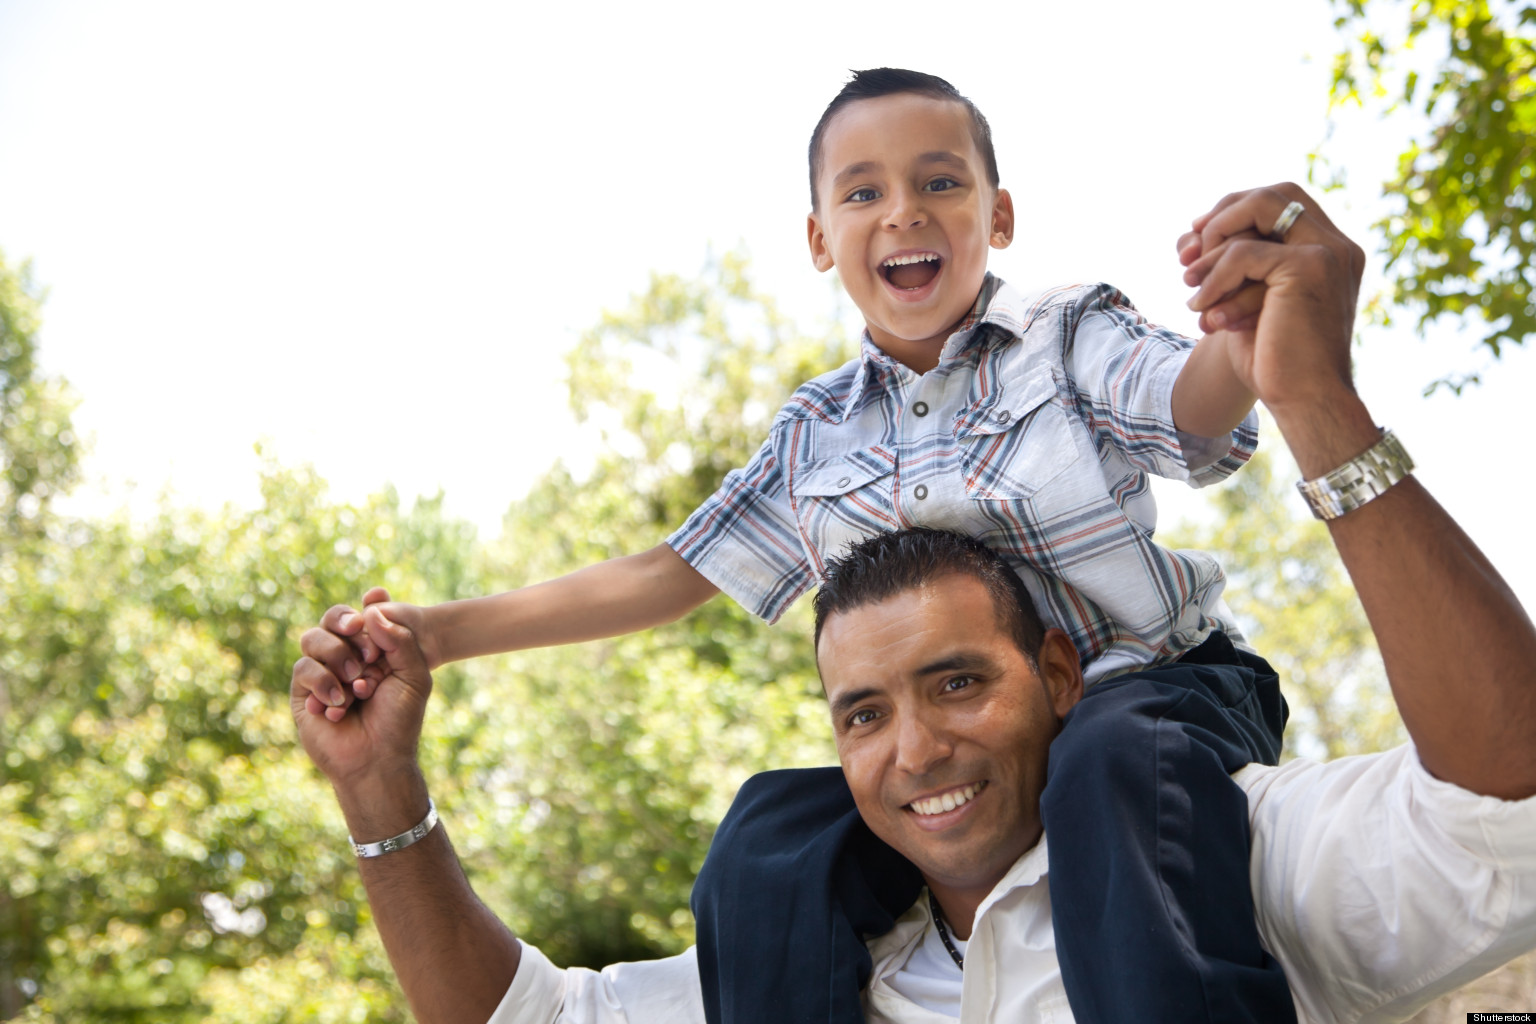 5 cool father and son outdoor activities for an awesome bonding